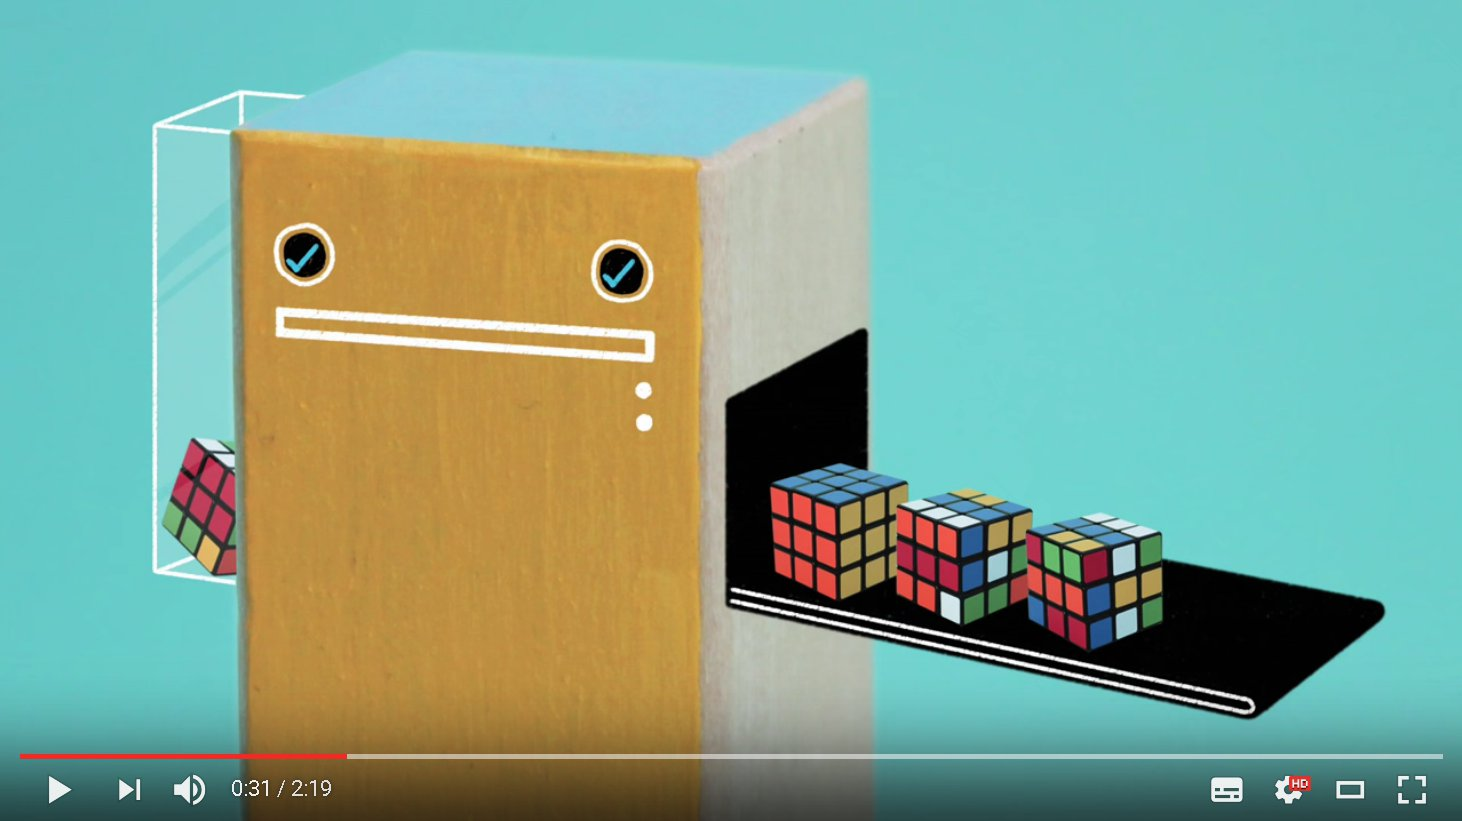 Video: Was ist Machine Learning?